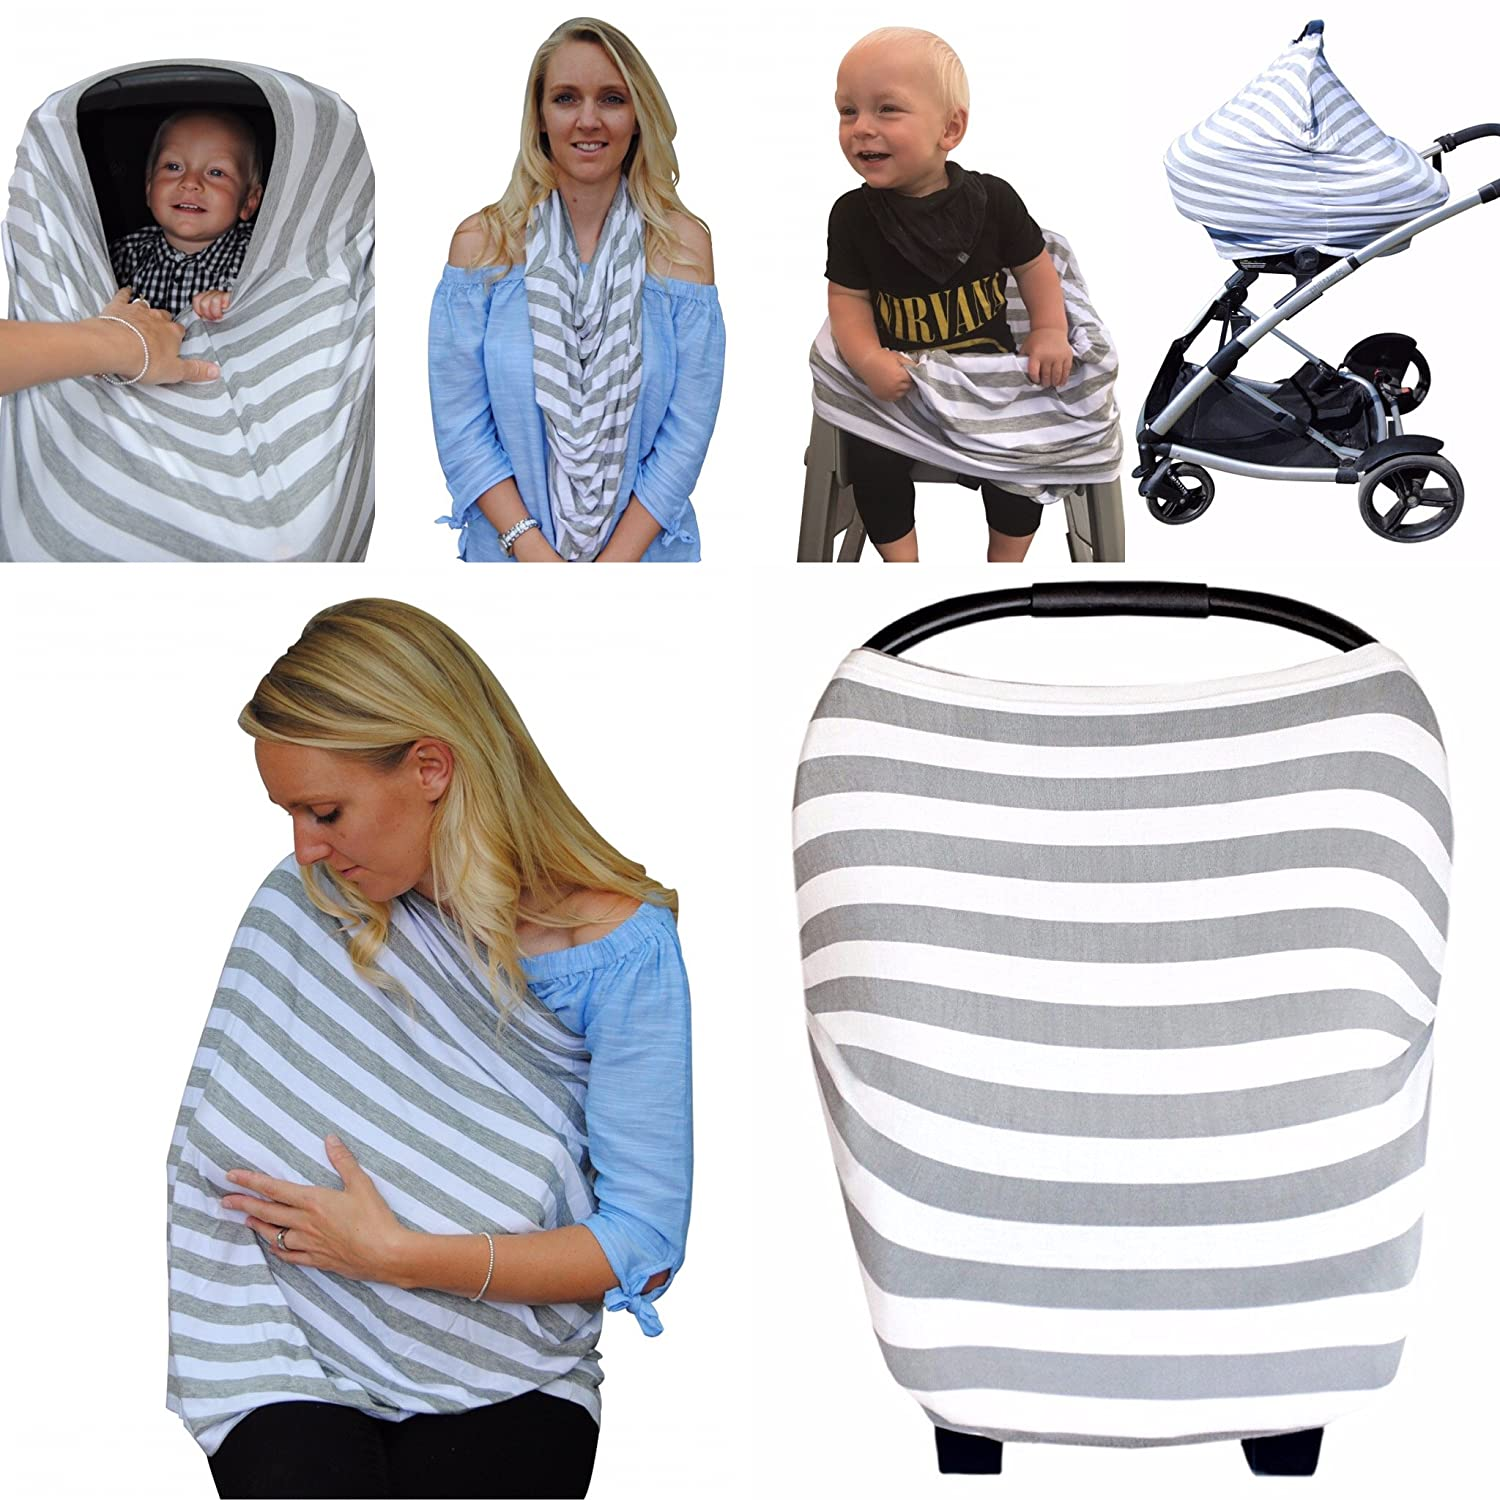 Nursing Breastfeeding Cover 5-in-1 Multi-Use Scarf – Breathable Stretchy Fabric – Convertible Nursing Cover, Baby Car Seat Canopy, Infinity Scarf – Breastfeeding Cover for Boys & Girls Chunky Chops